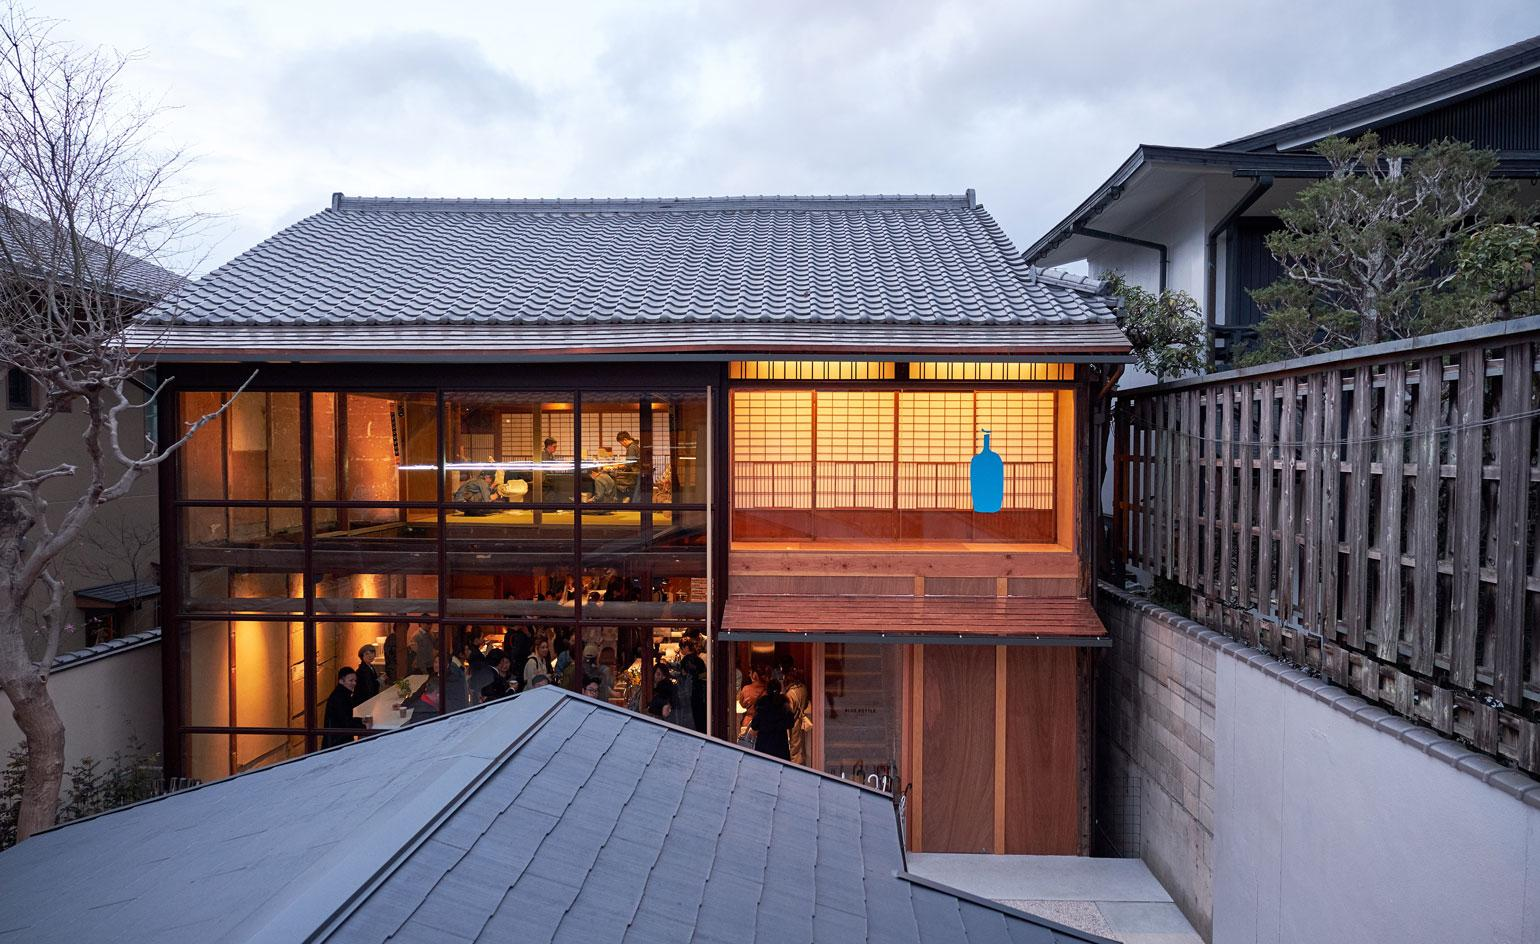 Kyoto's first Blue Bottle Coffee shop is an architectural zen retreat